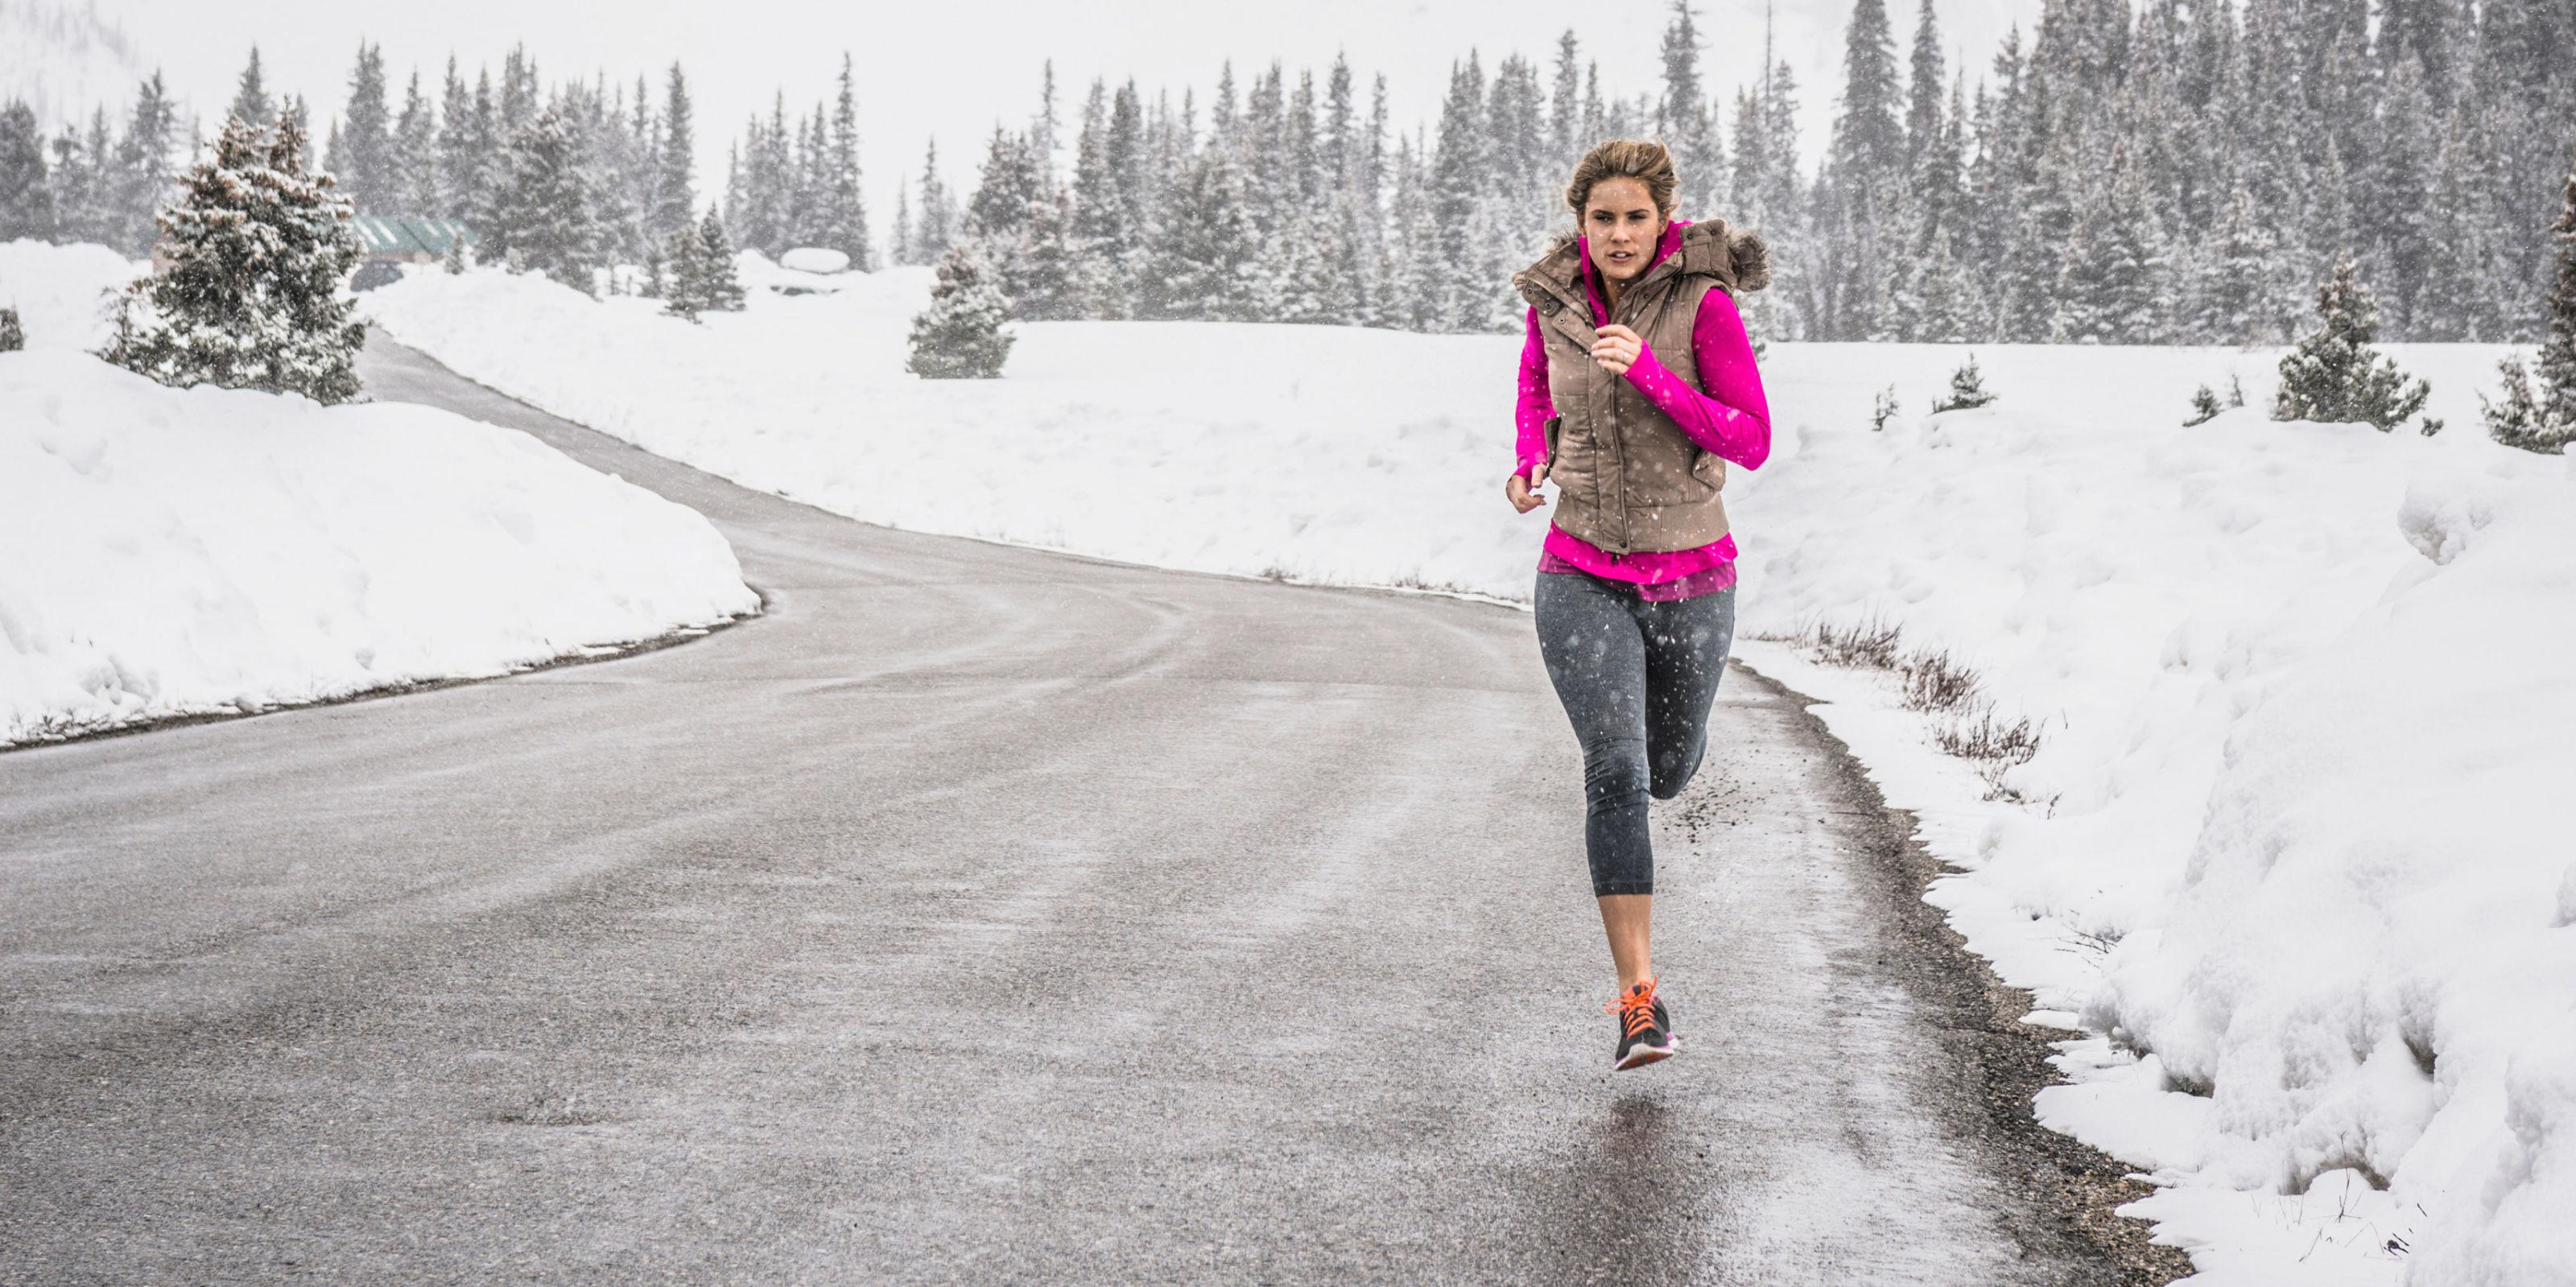 """<p>When cold weather hits, it's tempting to hit the gym for every workout. But <a href=""""http://www.reggiechambersfitness.com/"""" rel=""""nofollow noopener"""" target=""""_blank"""" data-ylk=""""slk:Reggie Chambers"""" class=""""link rapid-noclick-resp"""">Reggie Chambers</a>, a certified personal trainer at <a href=""""http://www.nypersonaltraining.com/"""" rel=""""nofollow noopener"""" target=""""_blank"""" data-ylk=""""slk:New York Personal Training"""" class=""""link rapid-noclick-resp"""">New York Personal Training</a>, says it's best to bust it out in nature as much as you can. """"Taking advantage of cold days to workout outside will help you torch more calories since your body has to work harder to keep you warm,"""" he explains. Sure, there are a lot of variables to determine <i>how many </i>calories you'll actually burn (things like your age, sex, and weight all play a role), but doing the same exact workout outside versus inside could net you a better burn.</p>"""